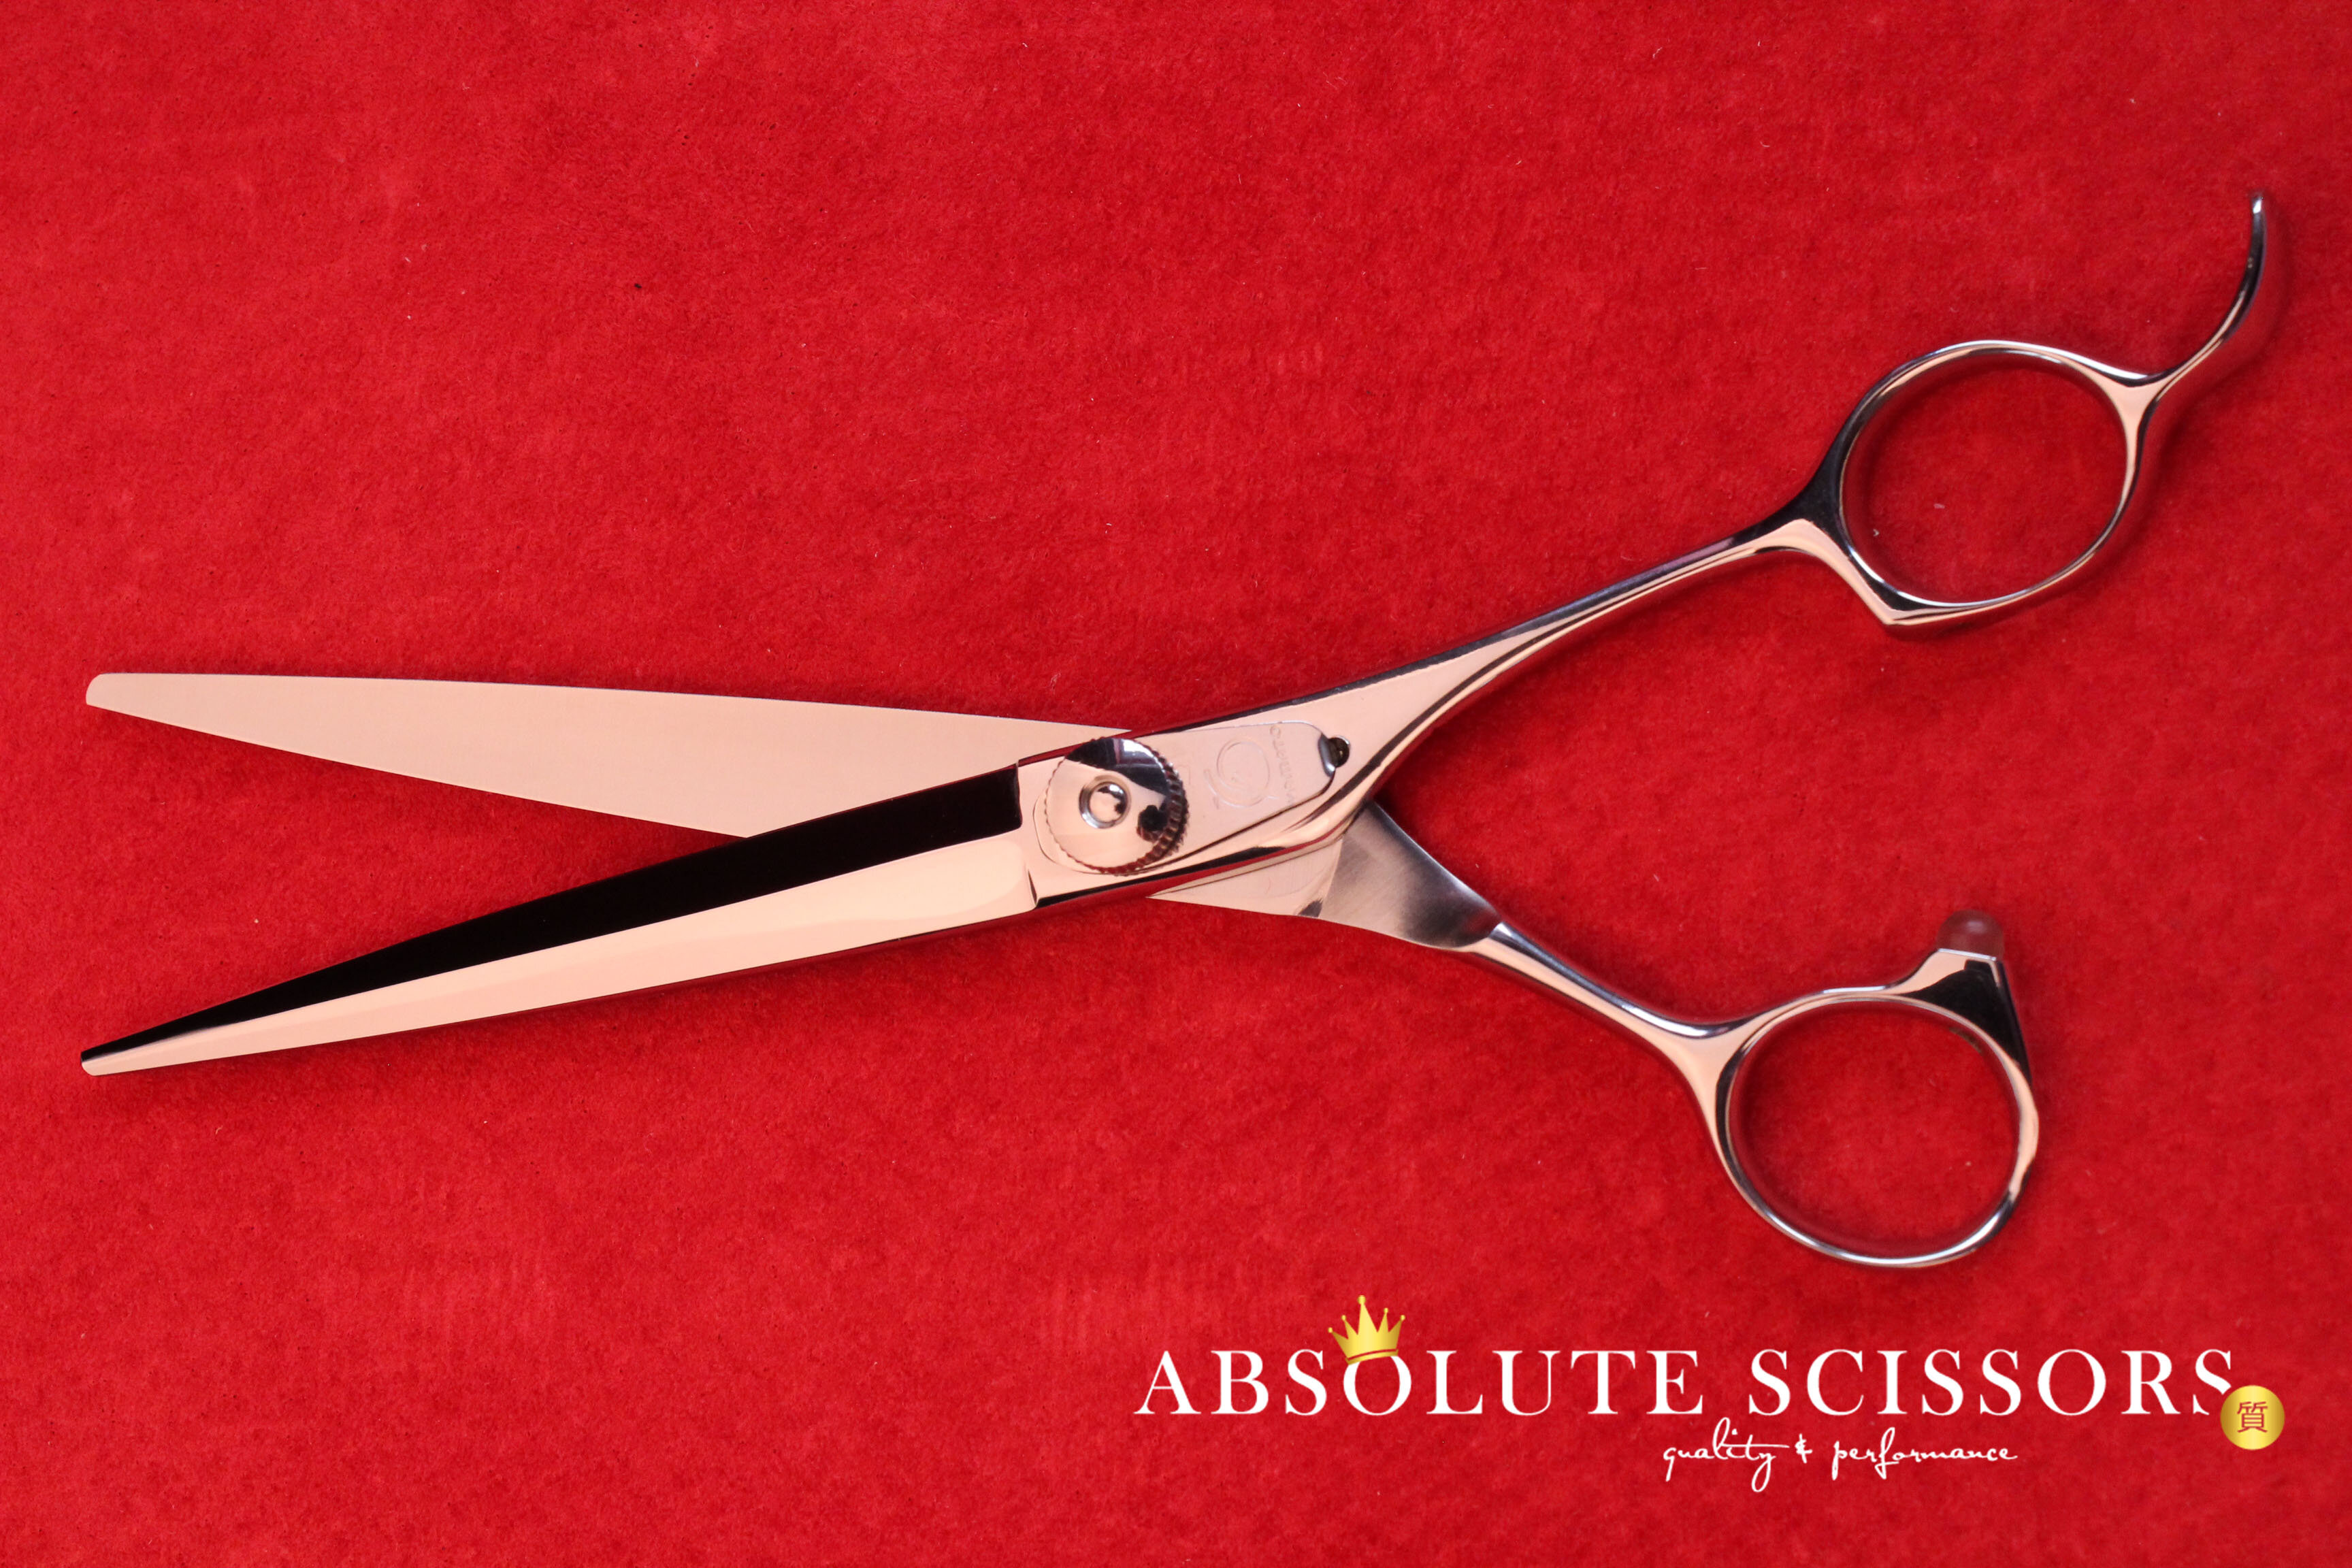 AV70 3778 Yamato hair scissors size 7 inches